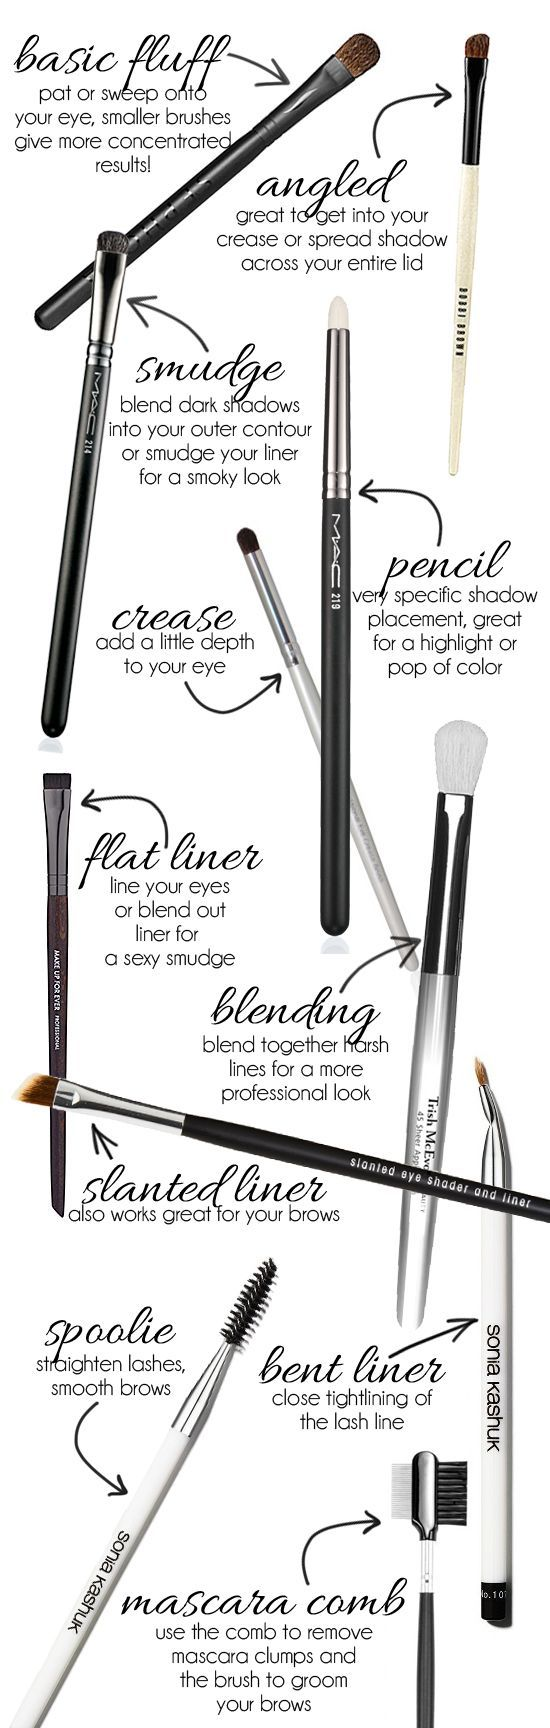 Eye Makeup Brushes 101: How to use each of them!Brushes For Eyeshadow, Eyeshadow Brush, Makeup Ey, Eye Brushes, Brushes Makeup, Eye Make Up Brushes, Eyeshadow Tutorial, Eye Makeup Brushes, Makeup Brushes 101